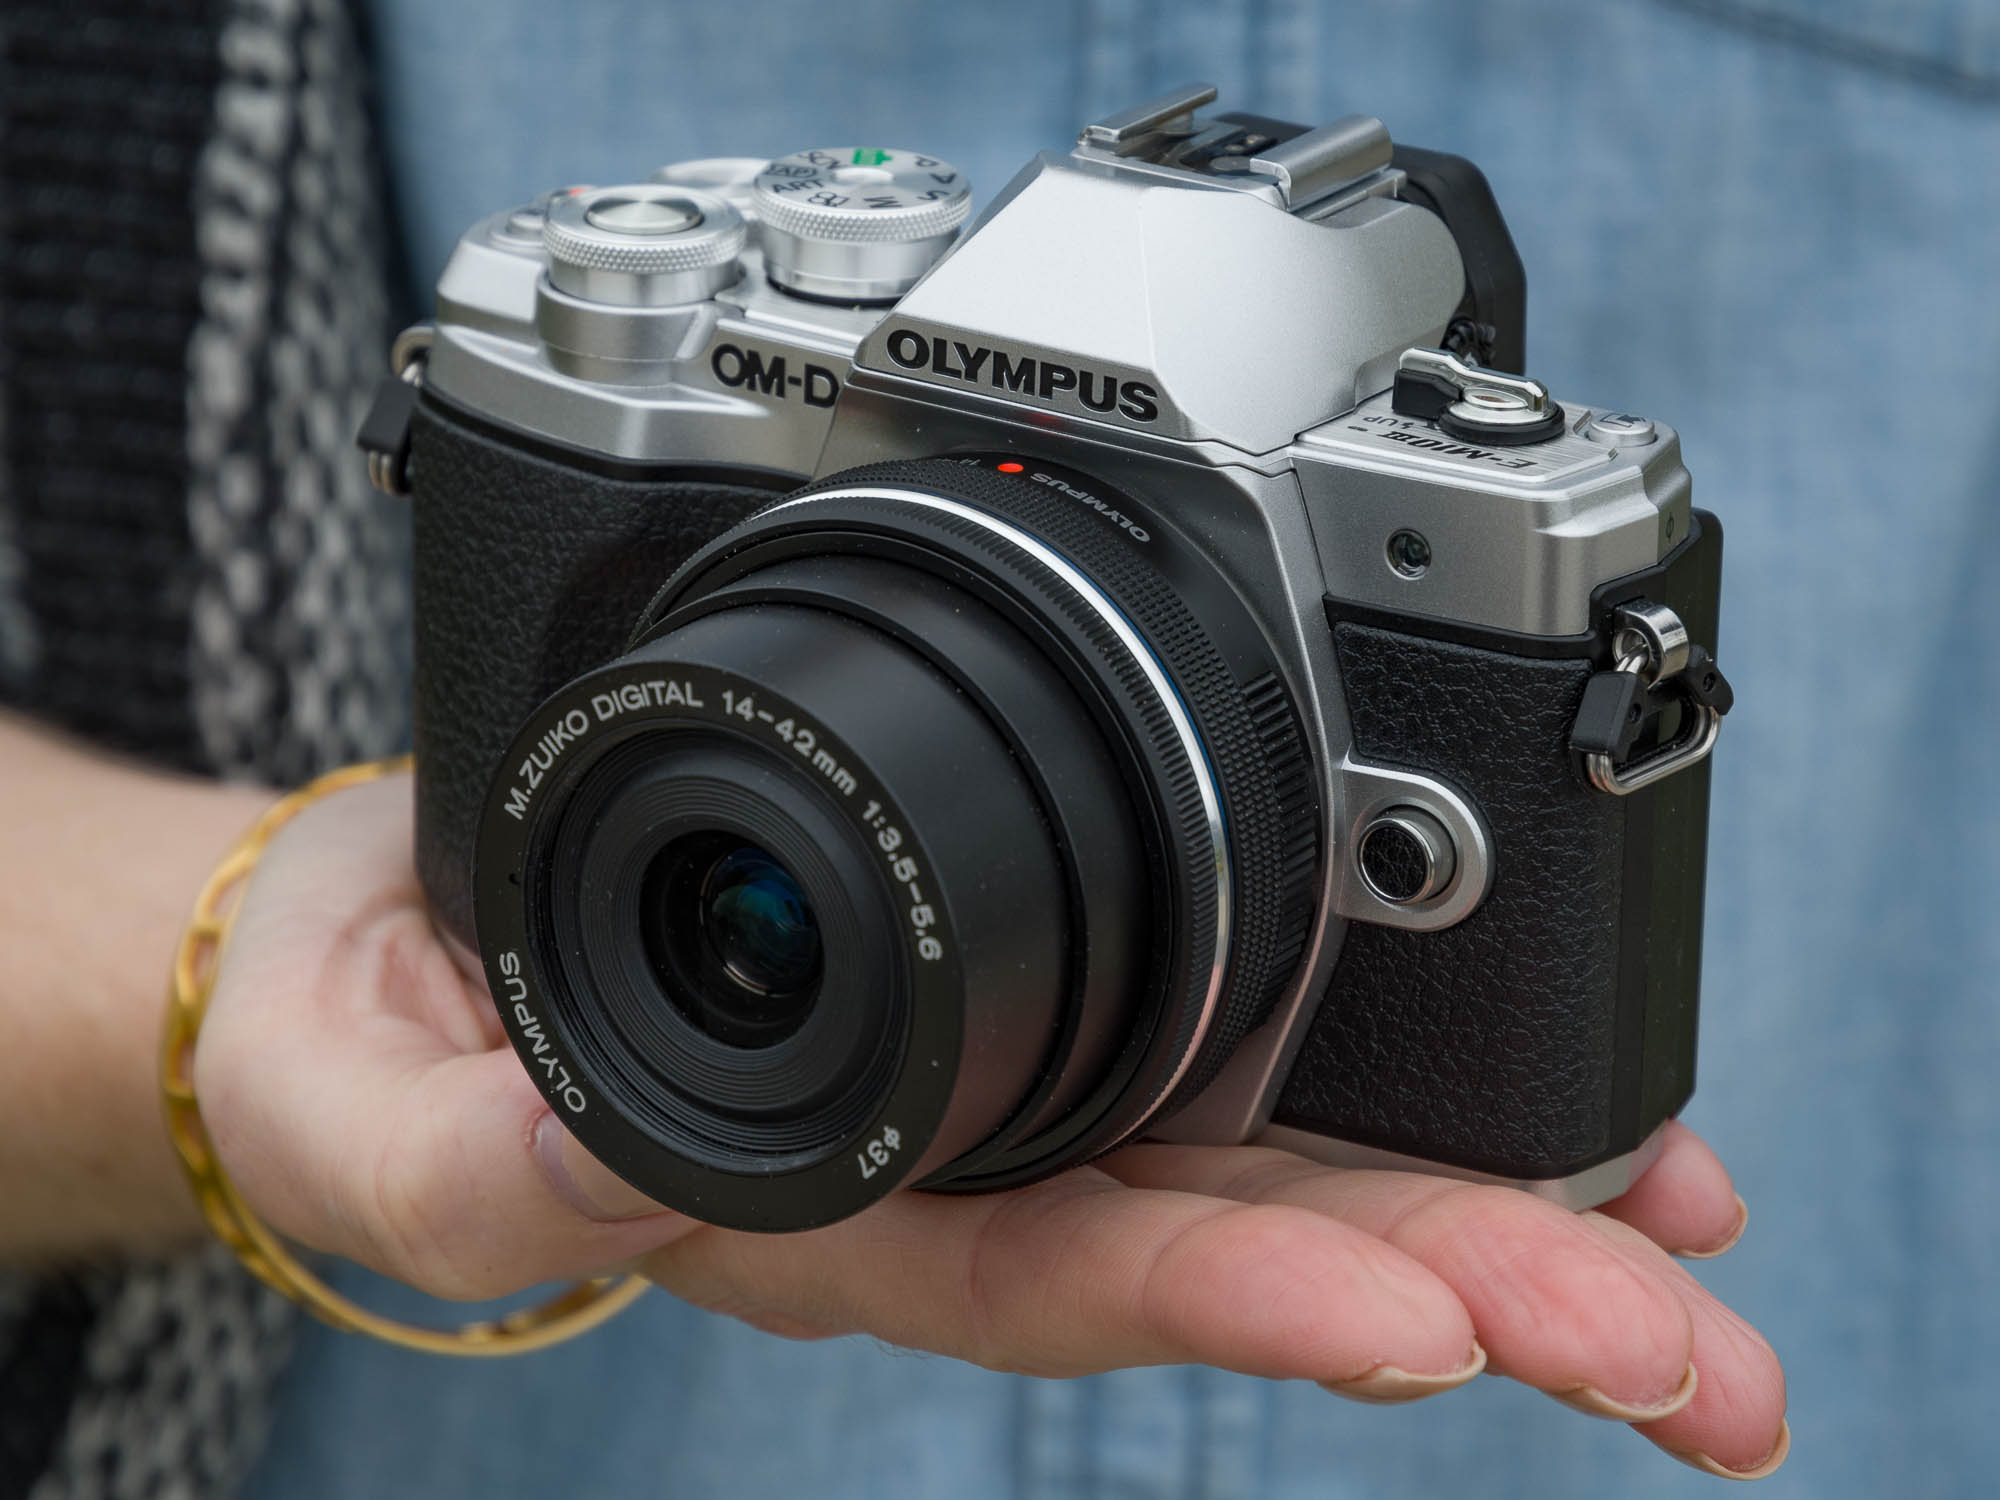 Hands On With The Olympus Om D E M10 Mark Iii Ii Kit 14 42mm Ez Silver Will Be Available Soon For 64999 Body Only Or 79999 Power Zoom What Do You Make Of It